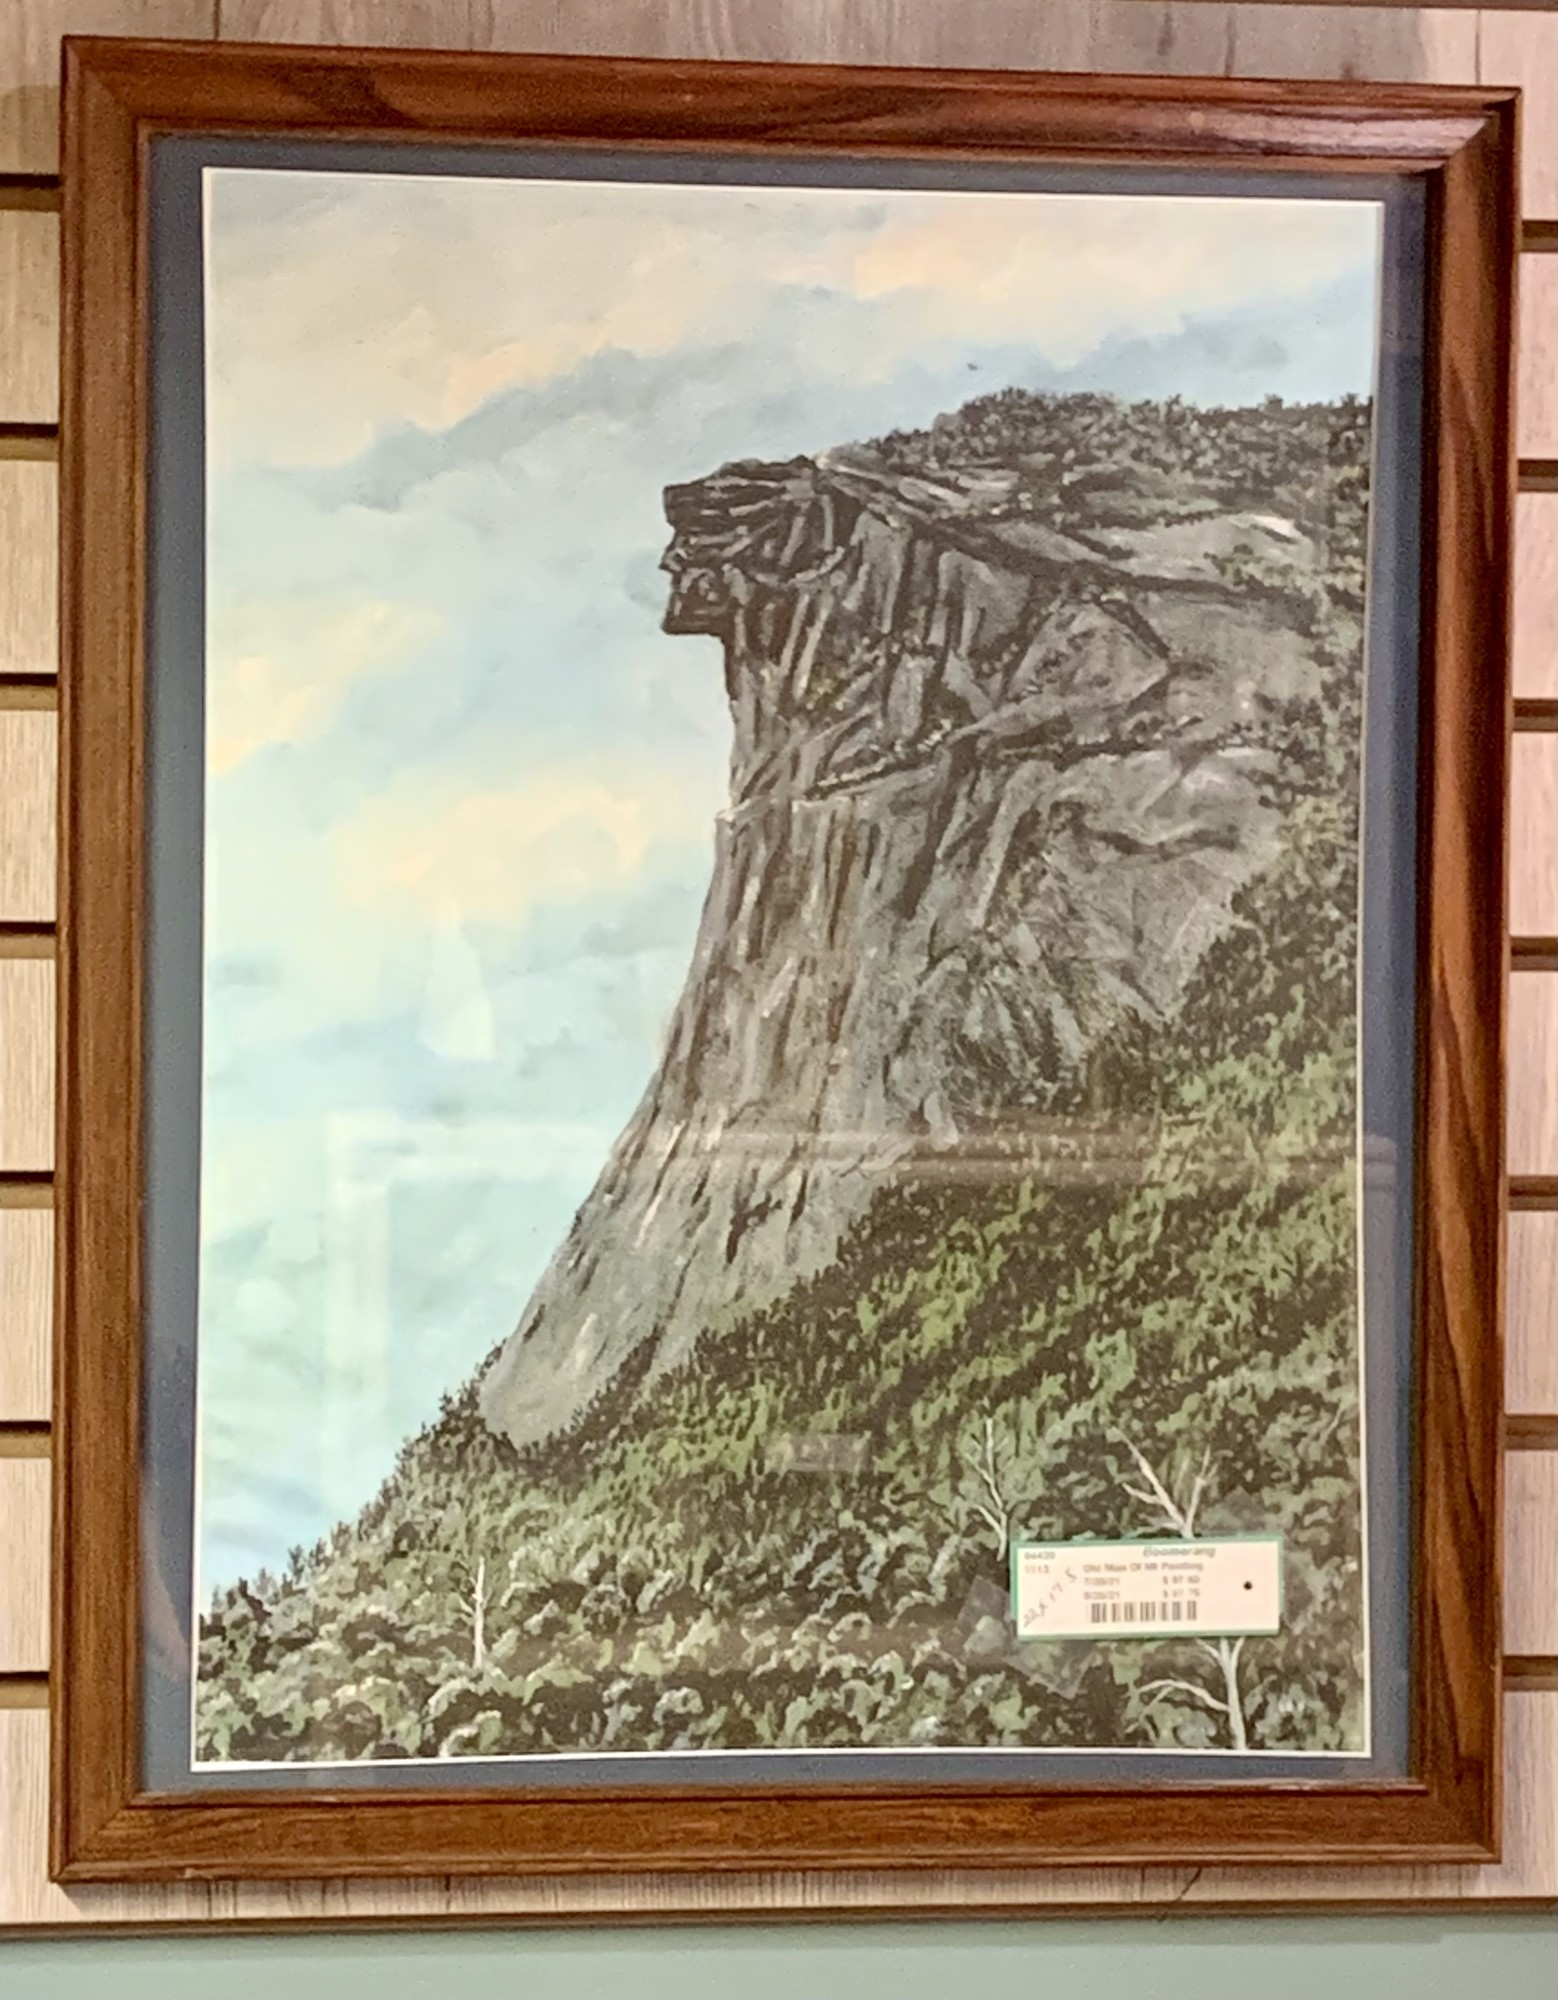 Old Man Of the Mountain Painting - $97.50<br /> 22IN Tall X 17.5IN Wide